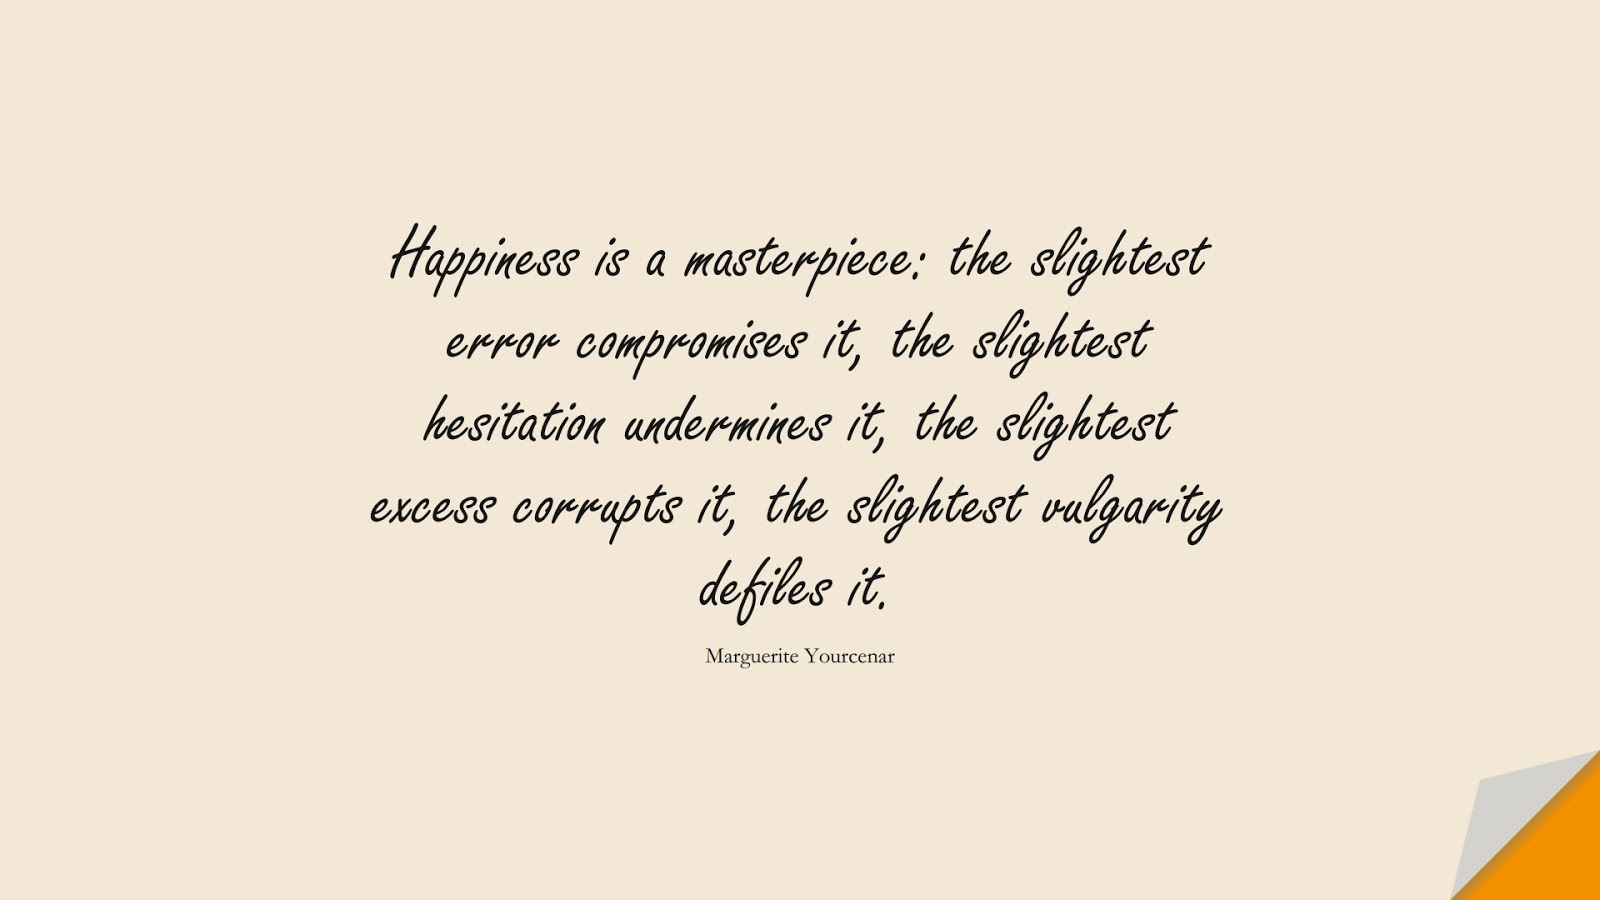 Happiness is a masterpiece: the slightest error compromises it, the slightest hesitation undermines it, the slightest excess corrupts it, the slightest vulgarity defiles it. (Marguerite Yourcenar);  #HappinessQuotes